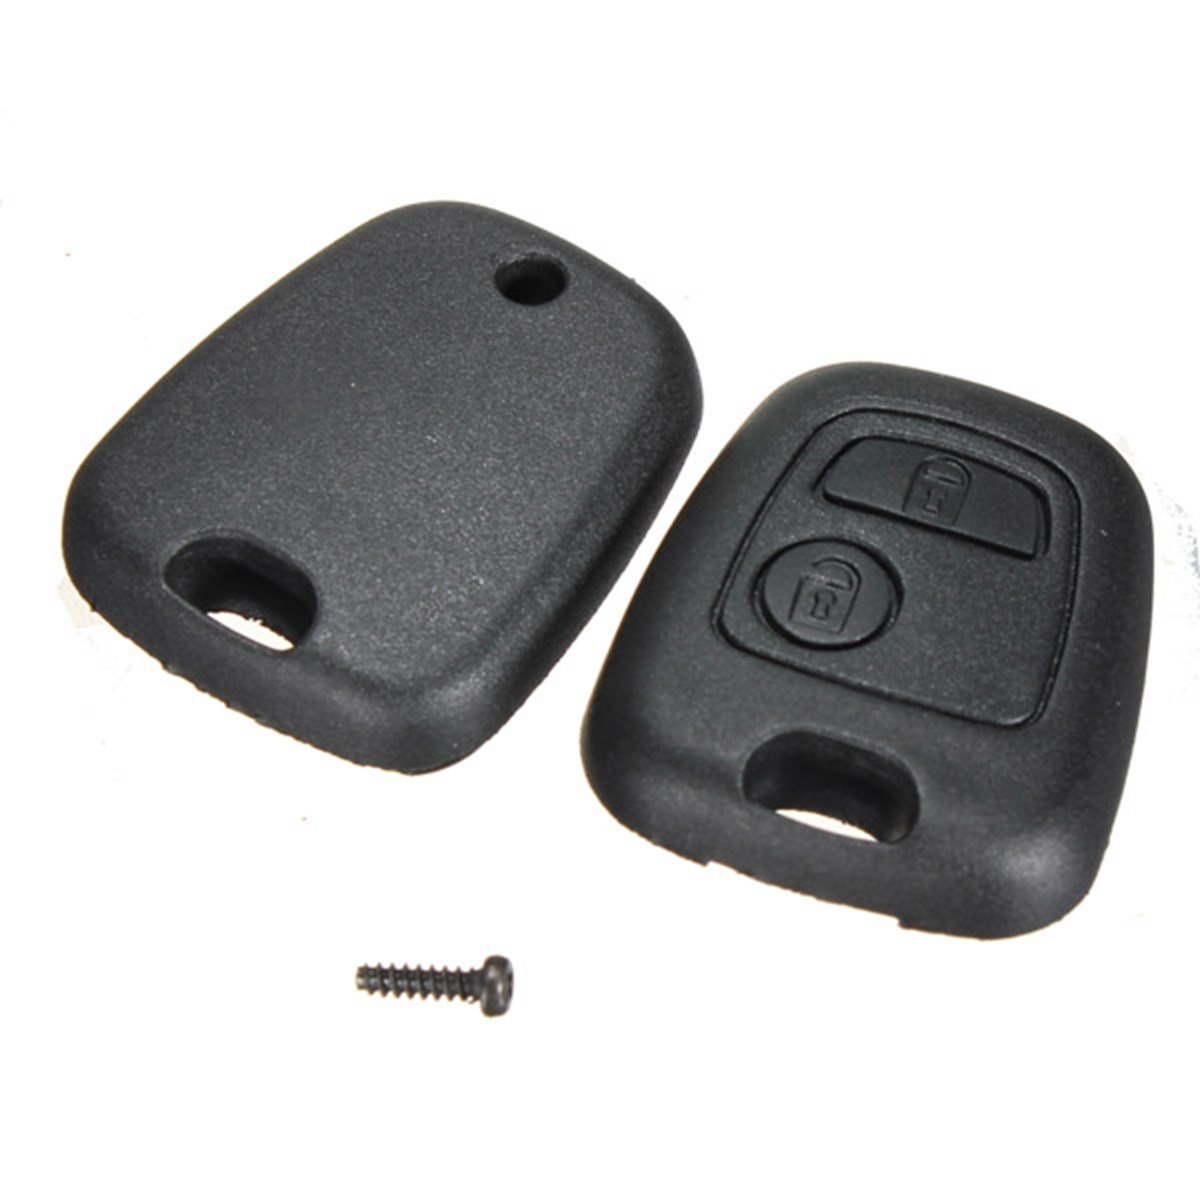 remote key case shell for citroen c1 c2 c3 c4 xsara. Black Bedroom Furniture Sets. Home Design Ideas